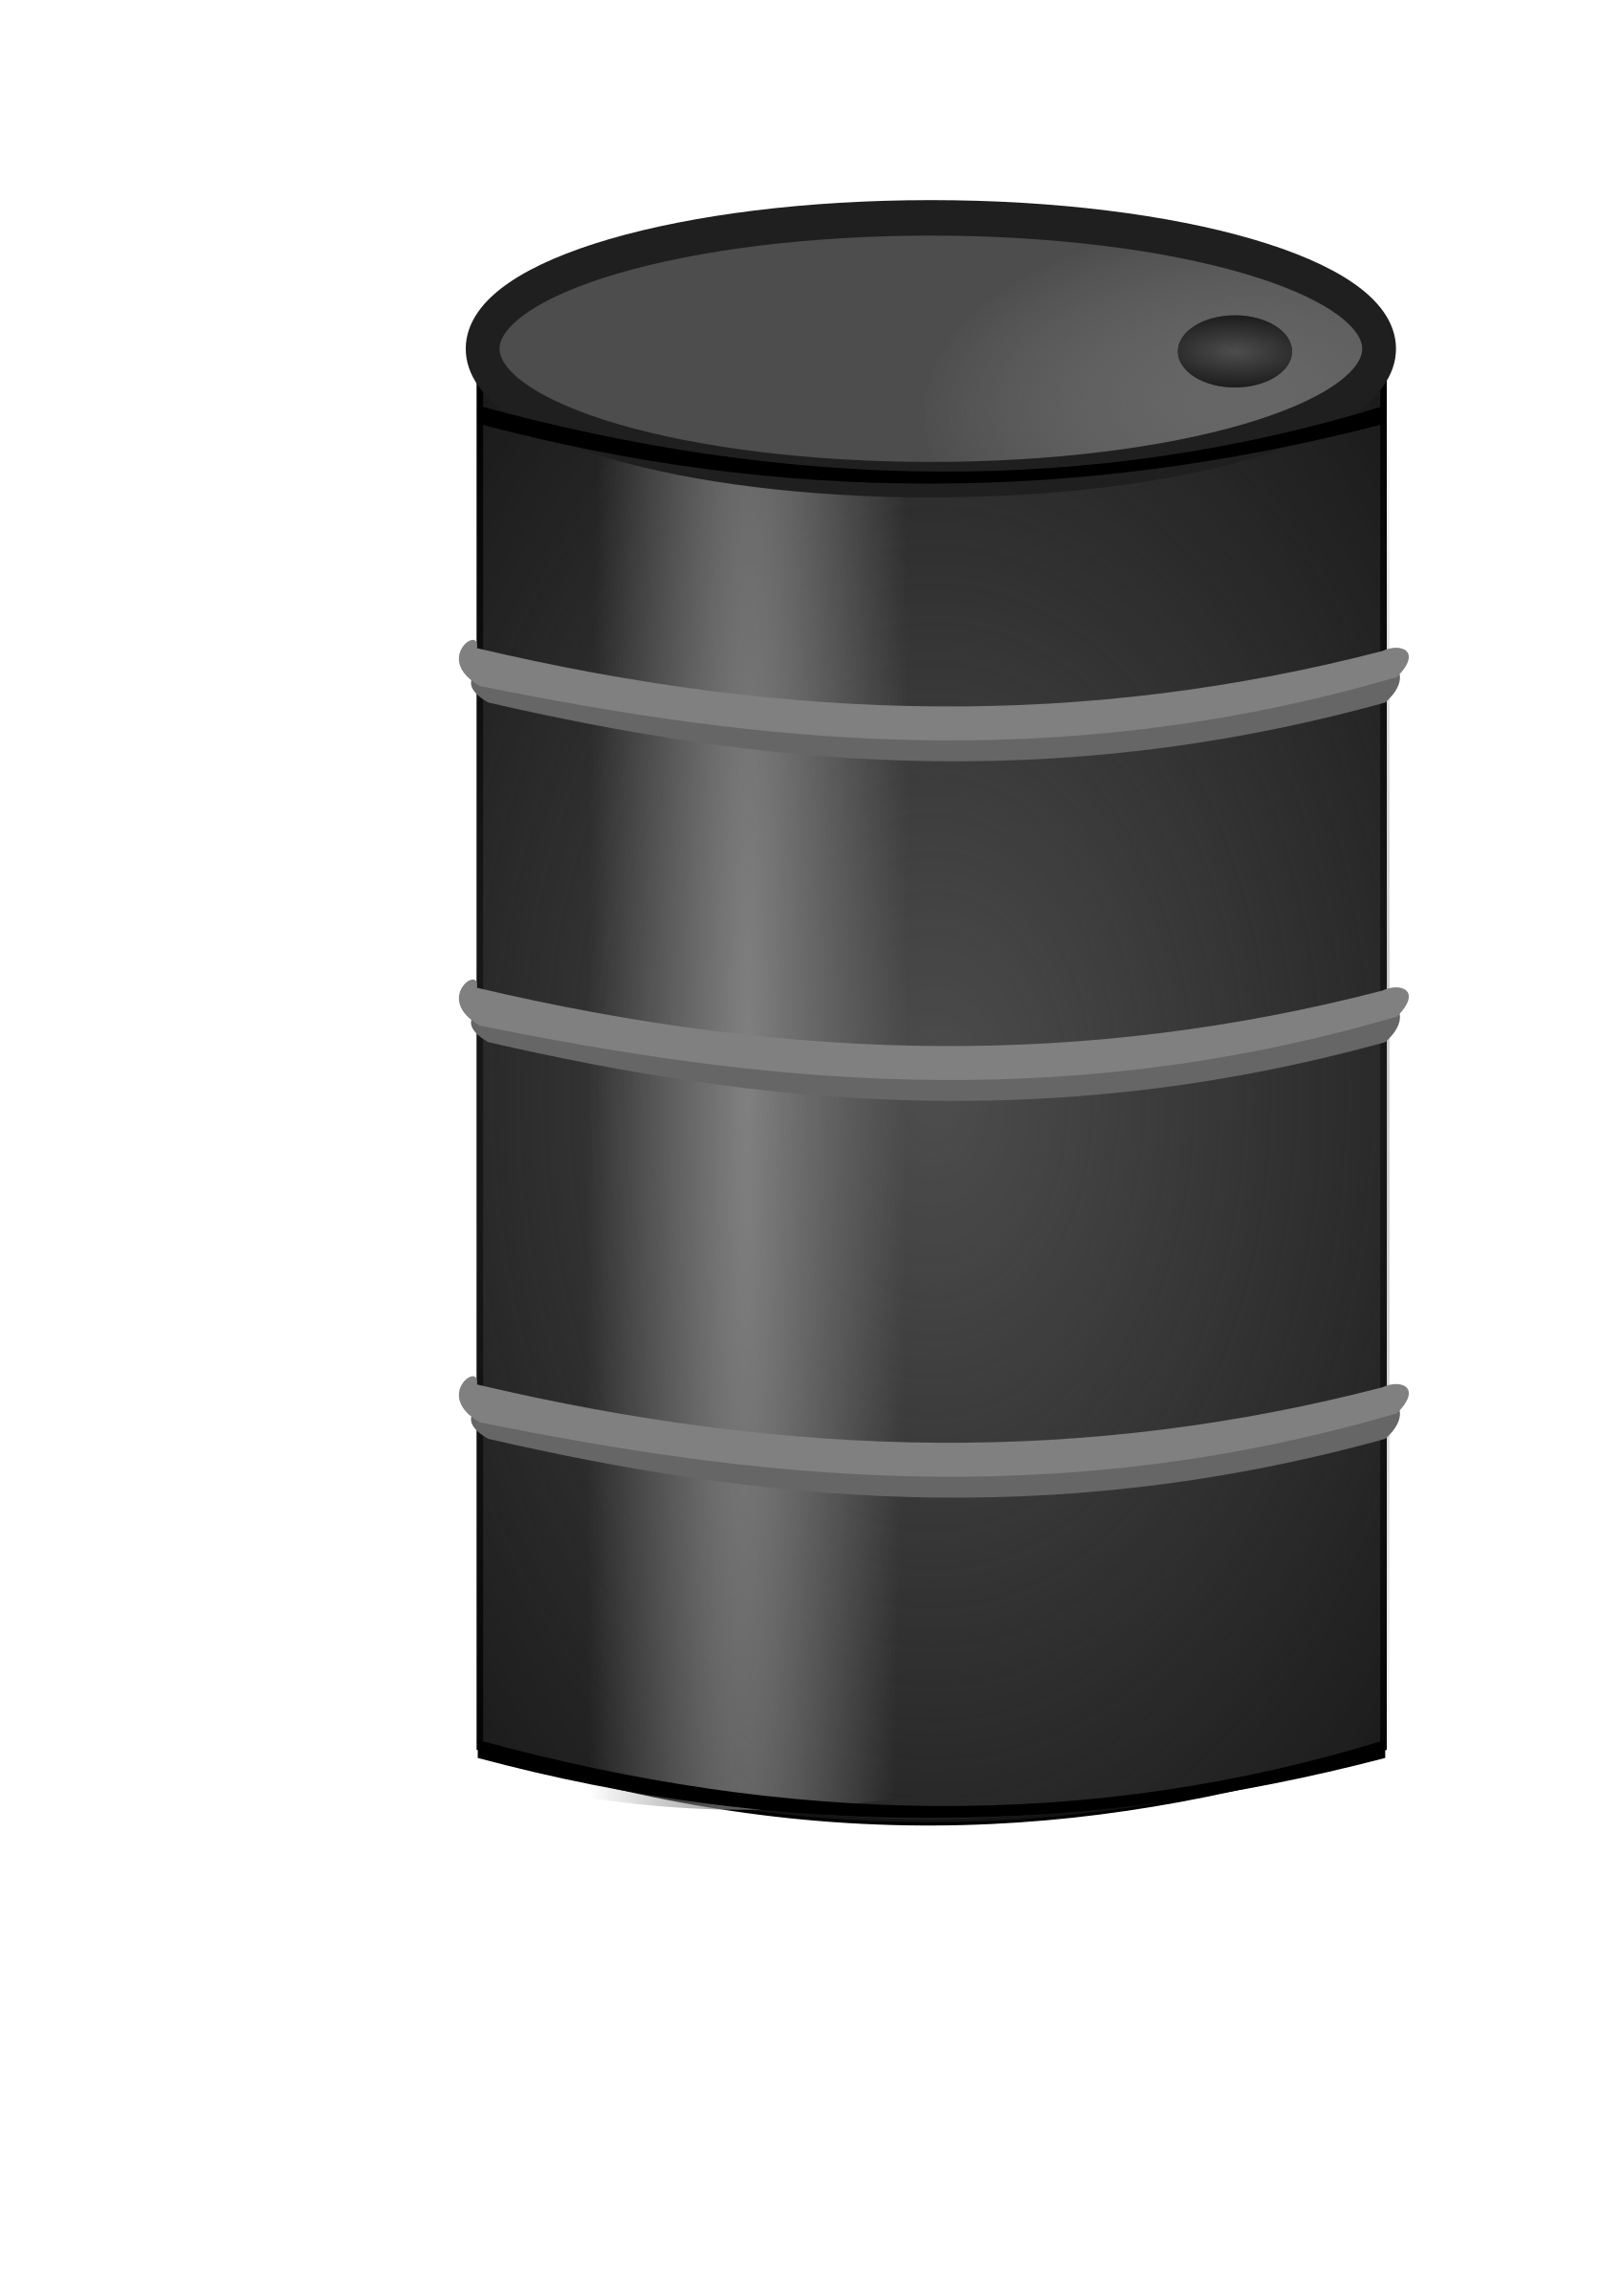 Steel Barrel by DinaMostafa